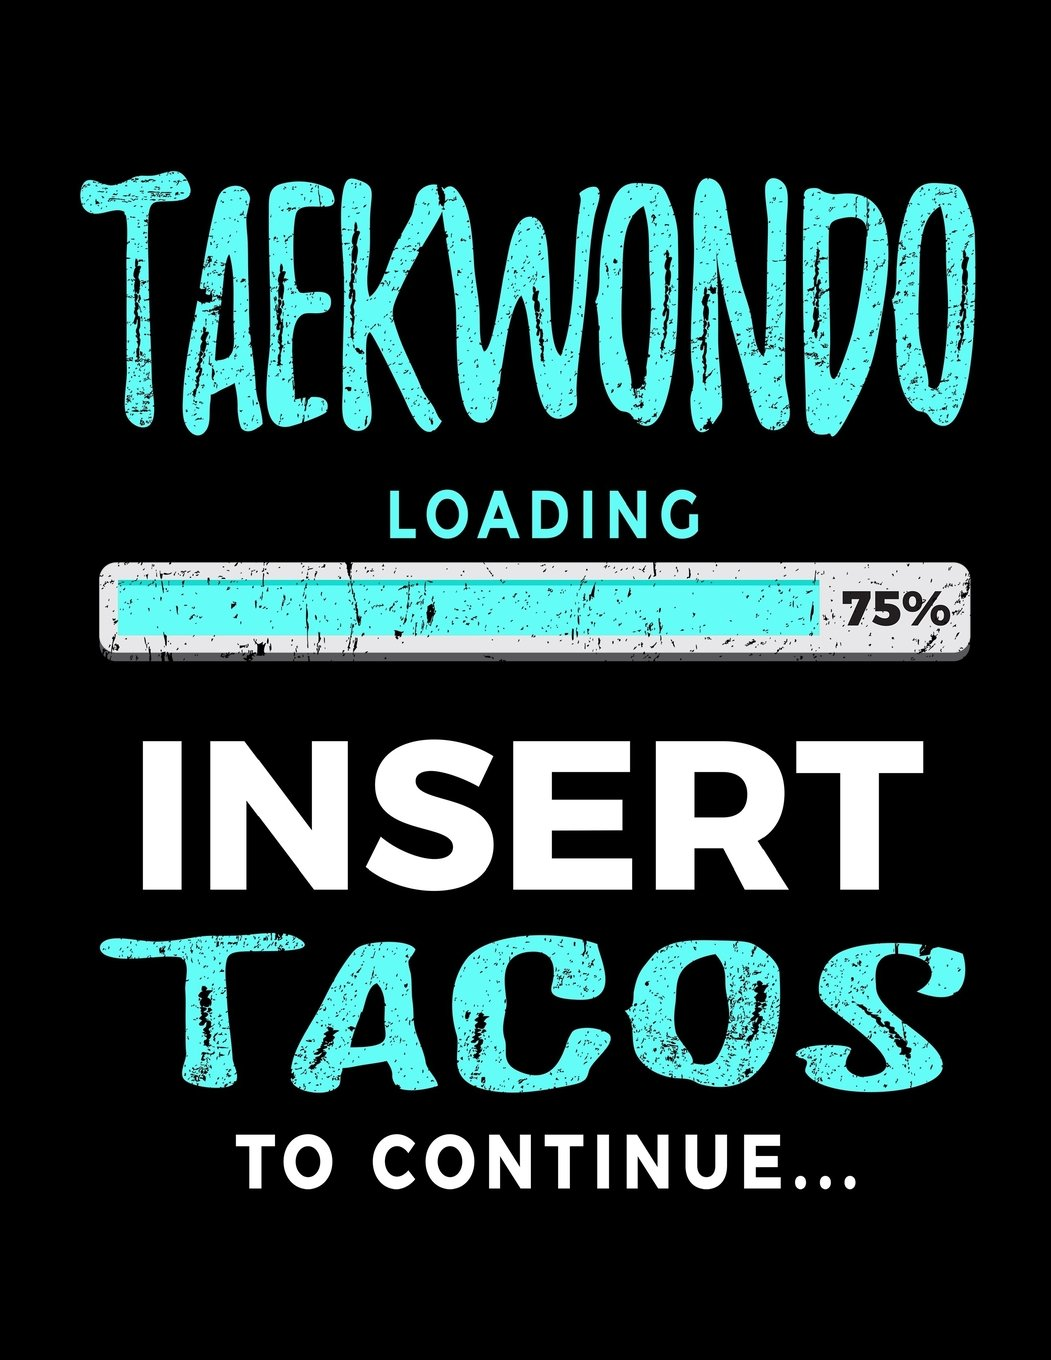 Taekwondo Loading 75% Insert Tacos To Continue: Journals To Write In 8.5 x 11 - Kids Books Taekwondo V2